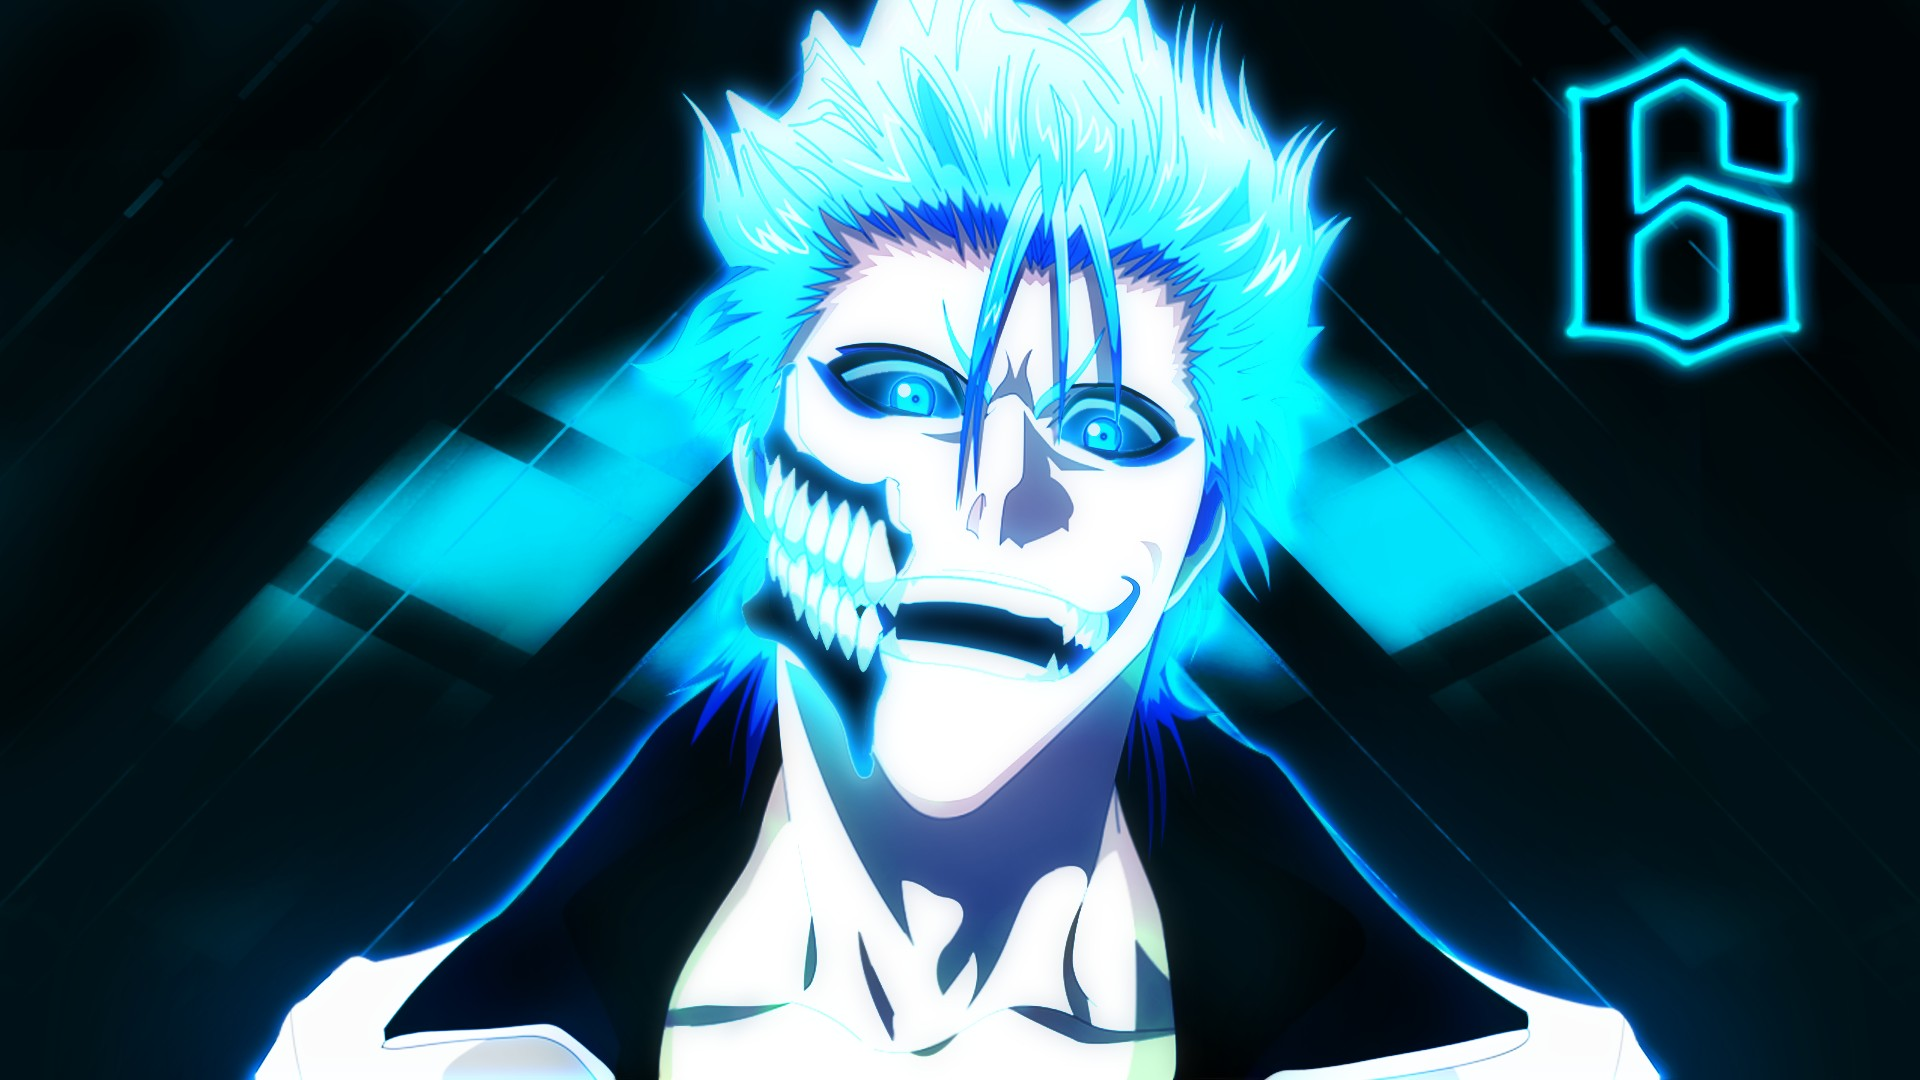 Bleach hd wallpaper zerochan anime image board grimmjow jeagerjaques download grimmjow jeagerjaques image voltagebd Choice Image